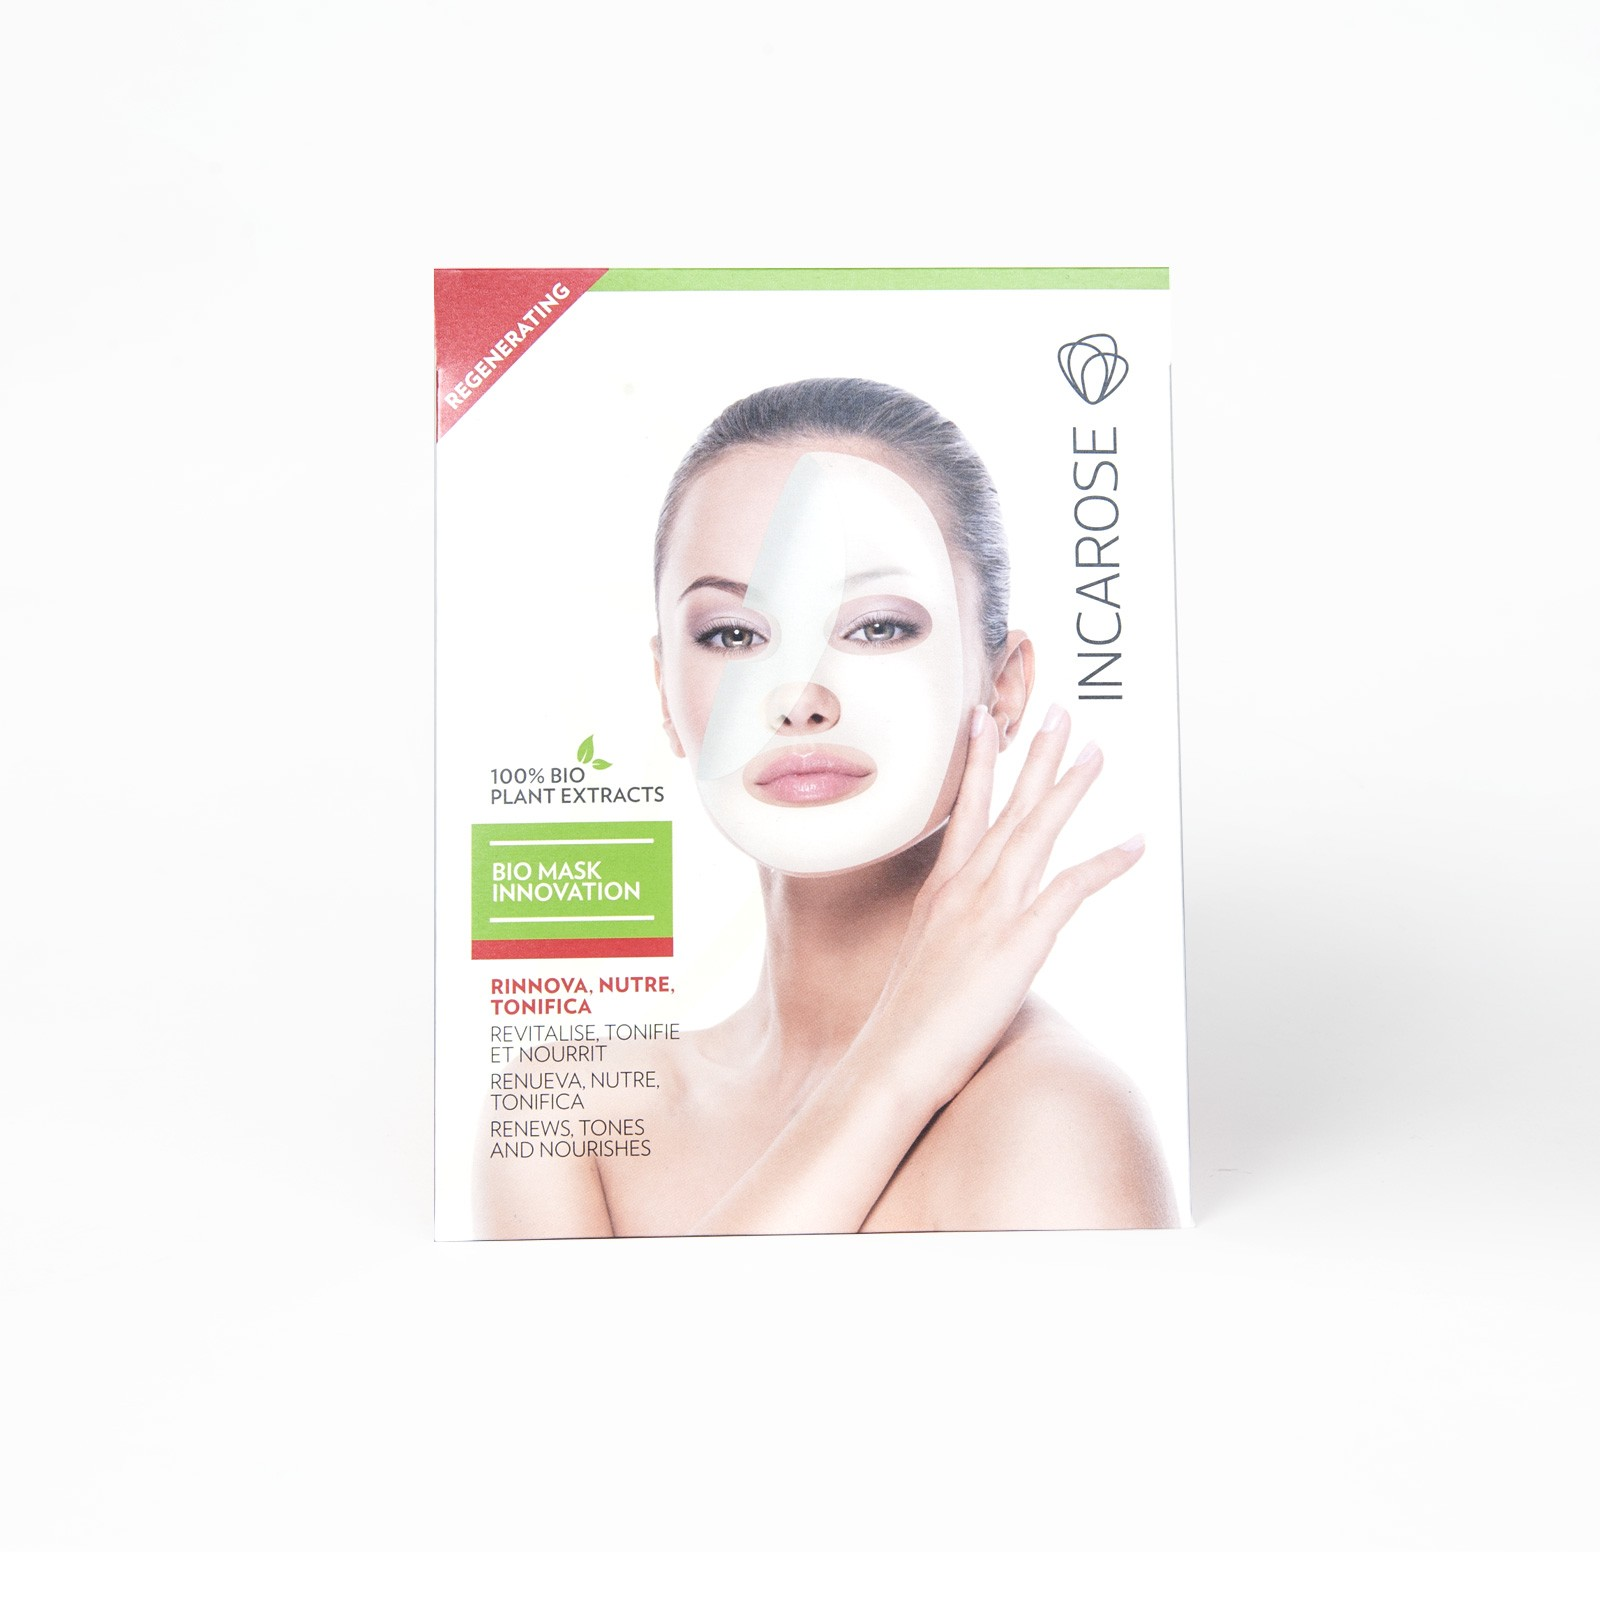 BIO MASK INNOVATION - Rigenerante (monouso)